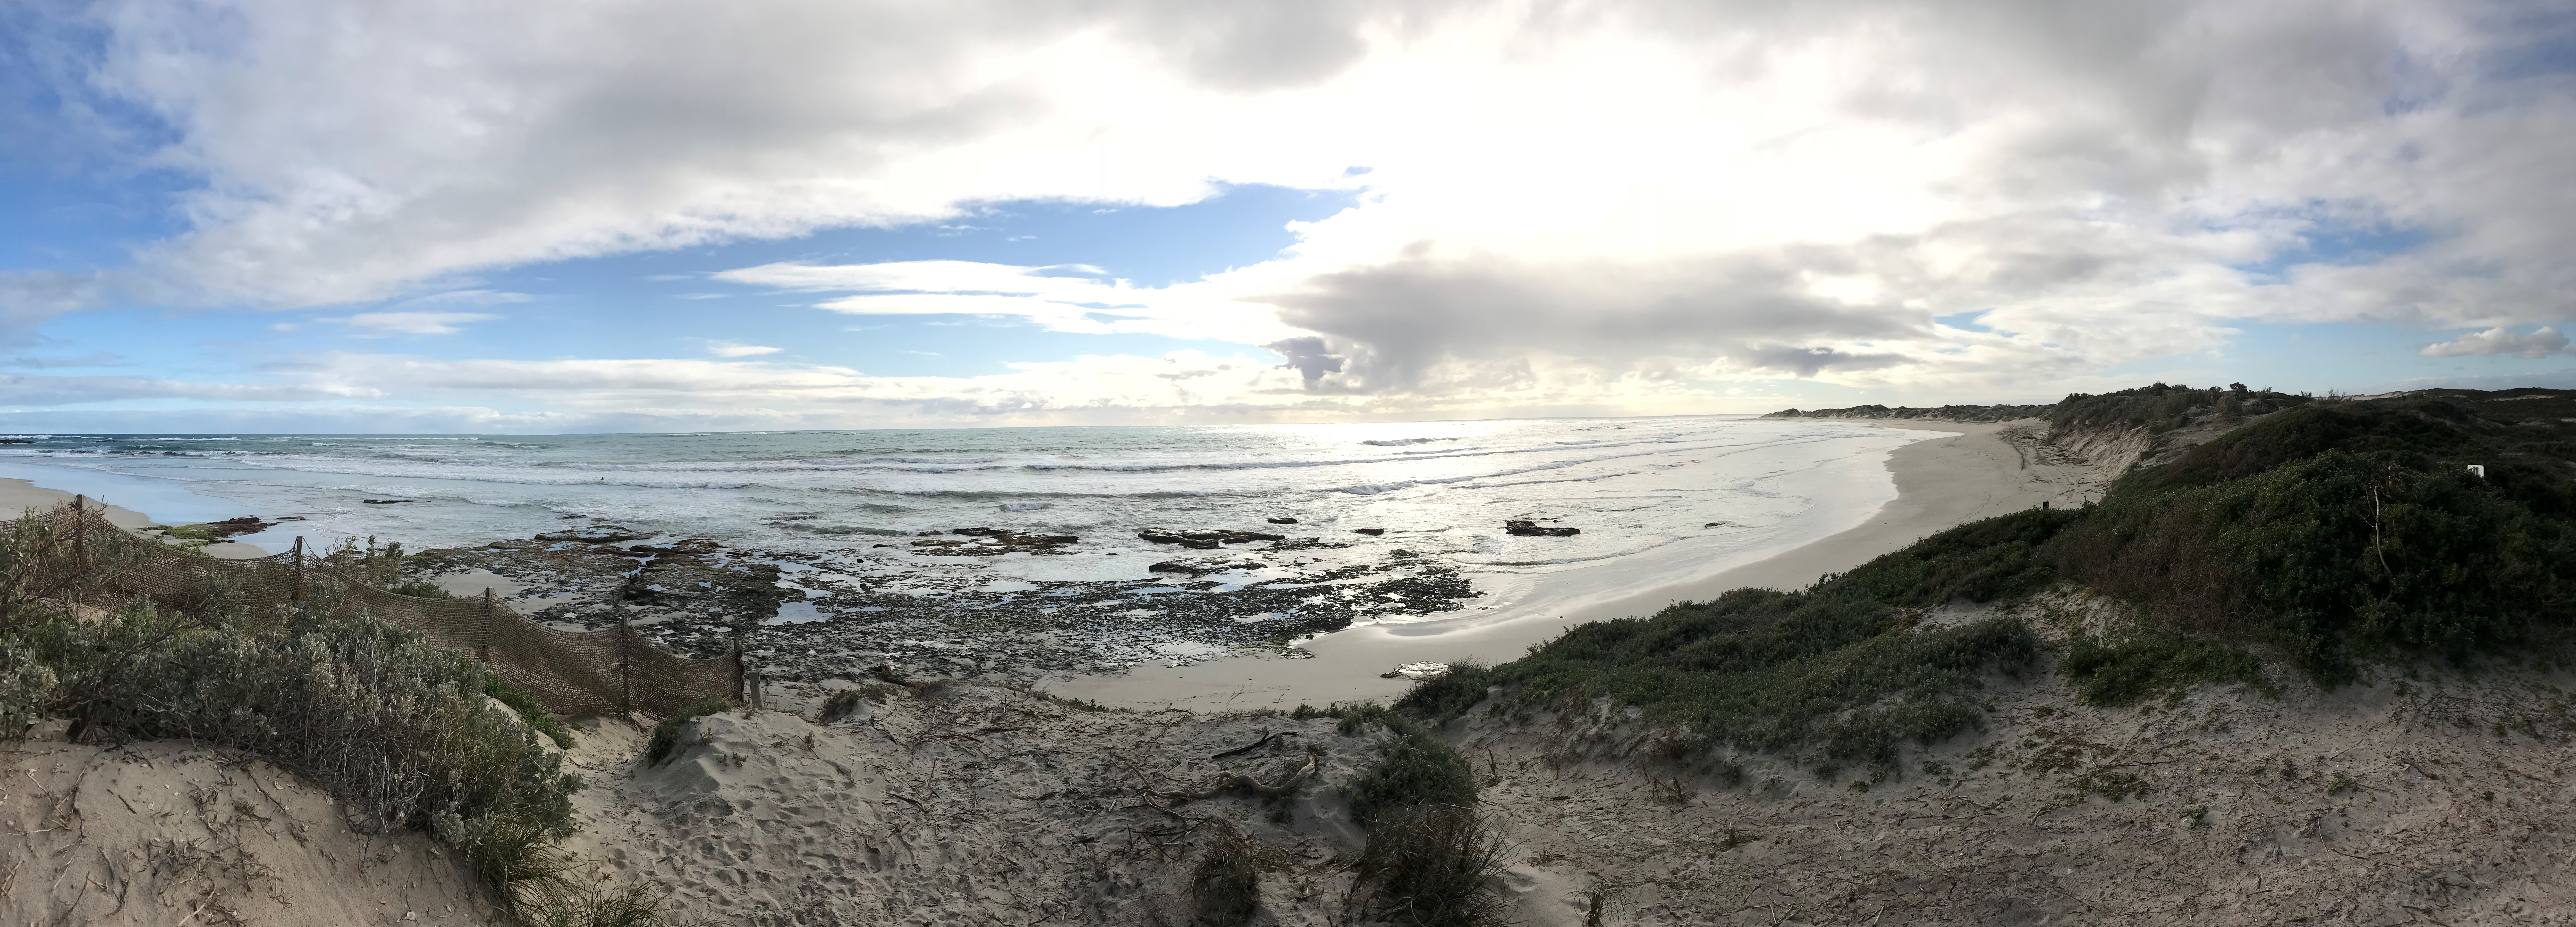 Beach, south of Geraldton